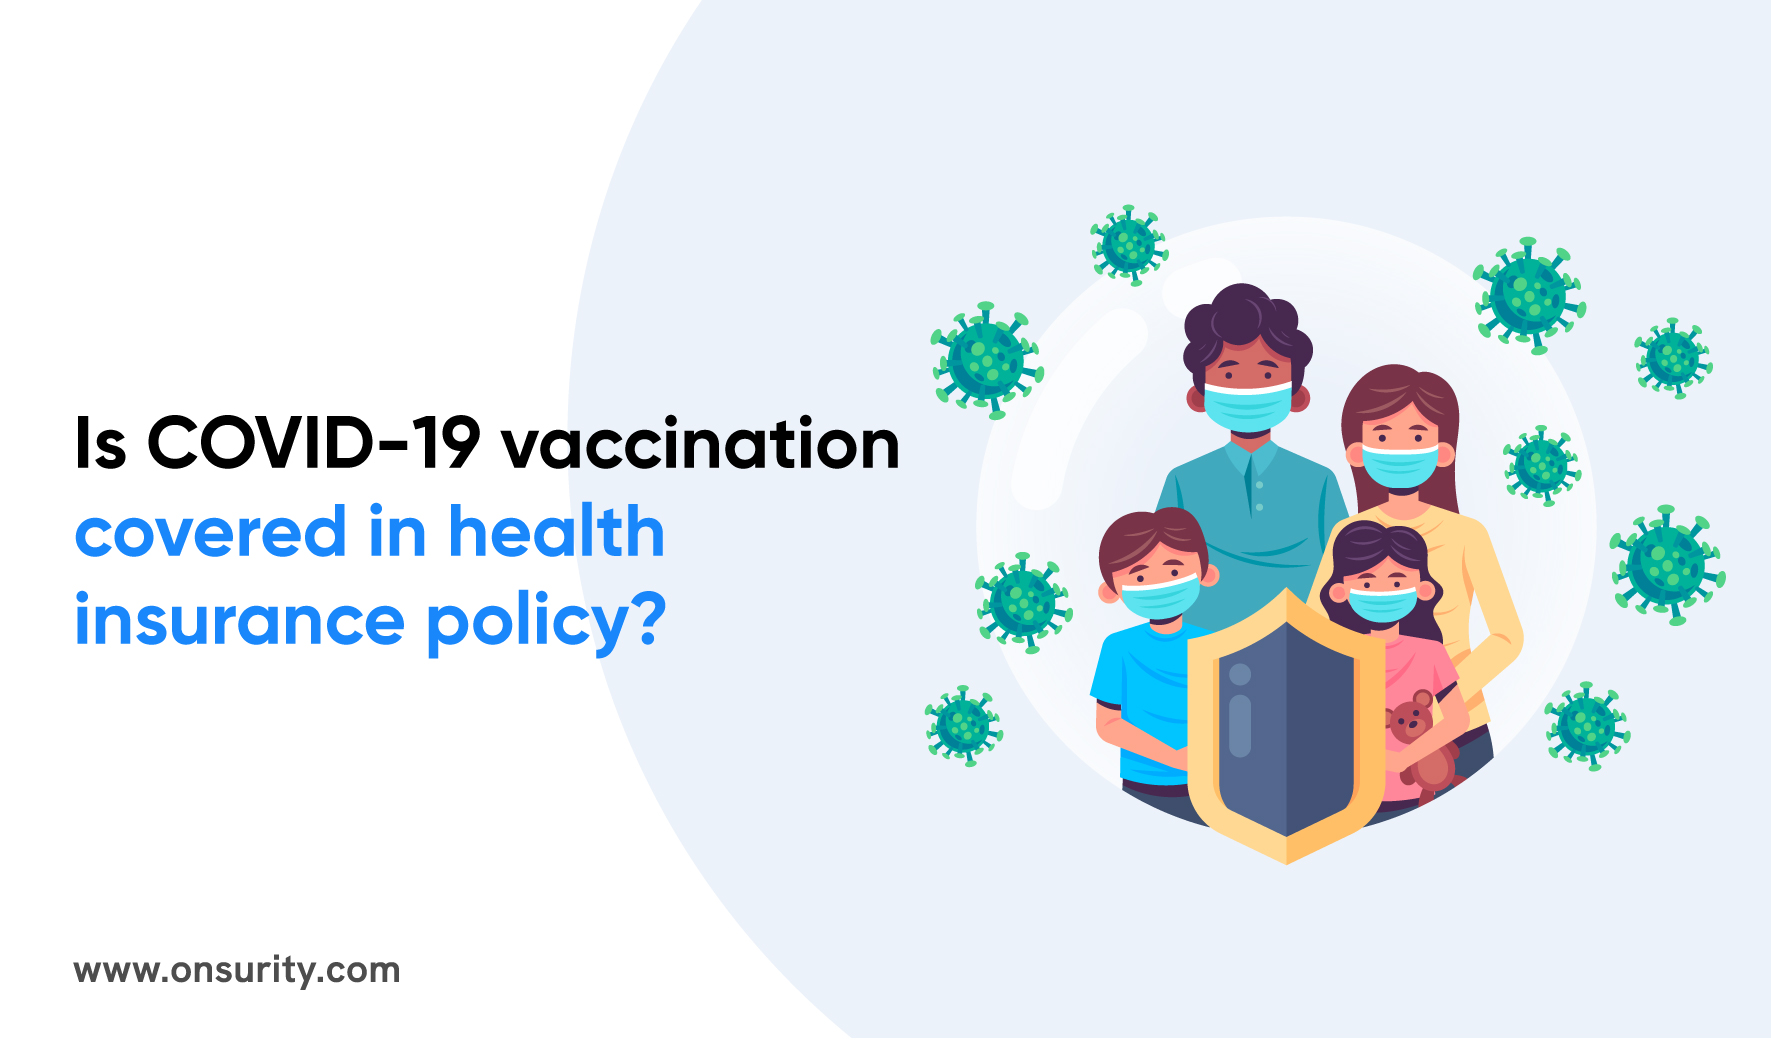 Is the vaccination covered by insurance?